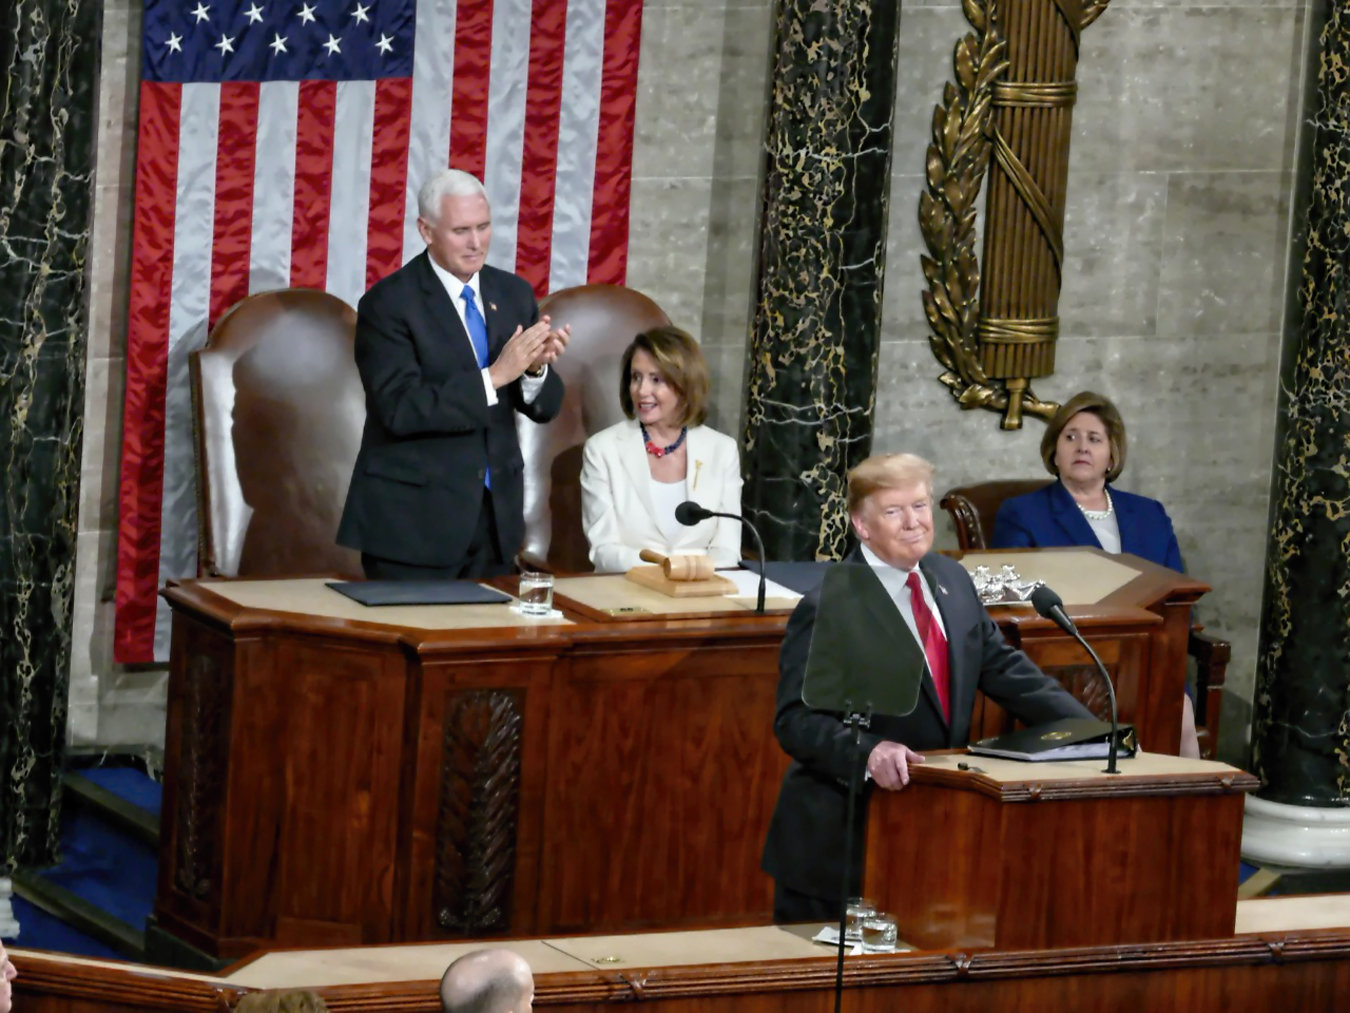 During the State of the Union address in February, Nancy Pelosi, Speaker of the House, sits out an applause line as Vice President Pence rises in support of many of the President's agenda priorities including building a wall to prevent illegal immigration, limiting late term abortions, and defending America against Socialism.